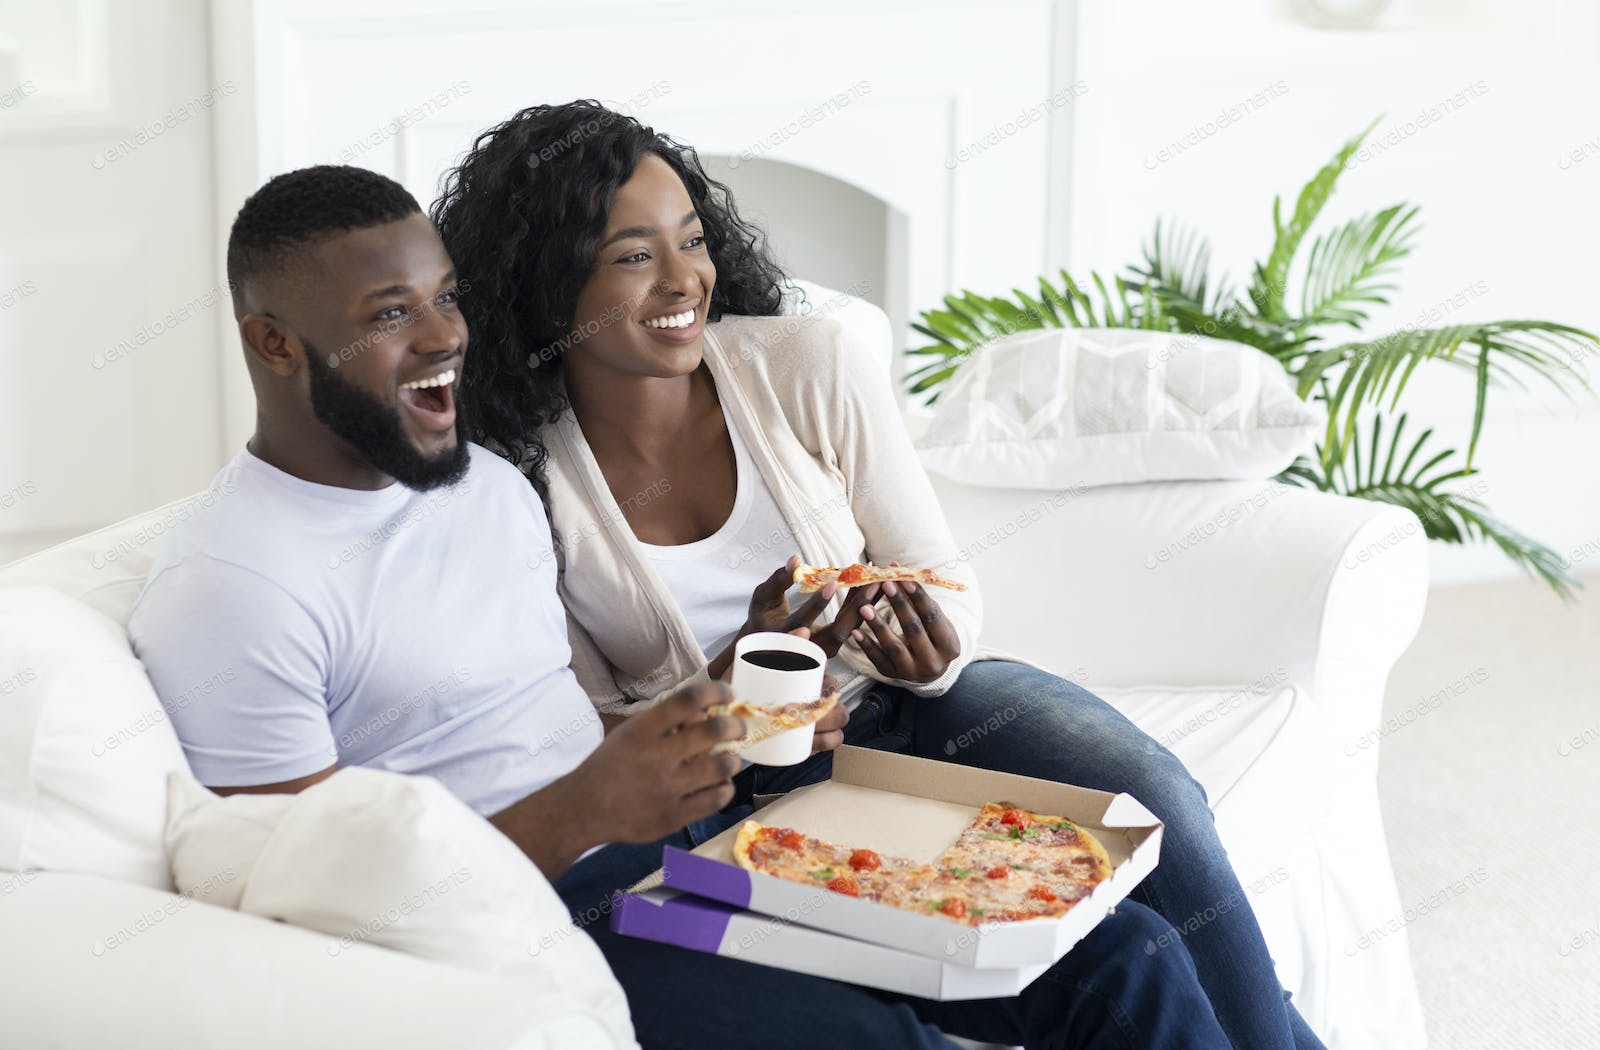 5 Fun Night Activities You Can Share With Your Partner